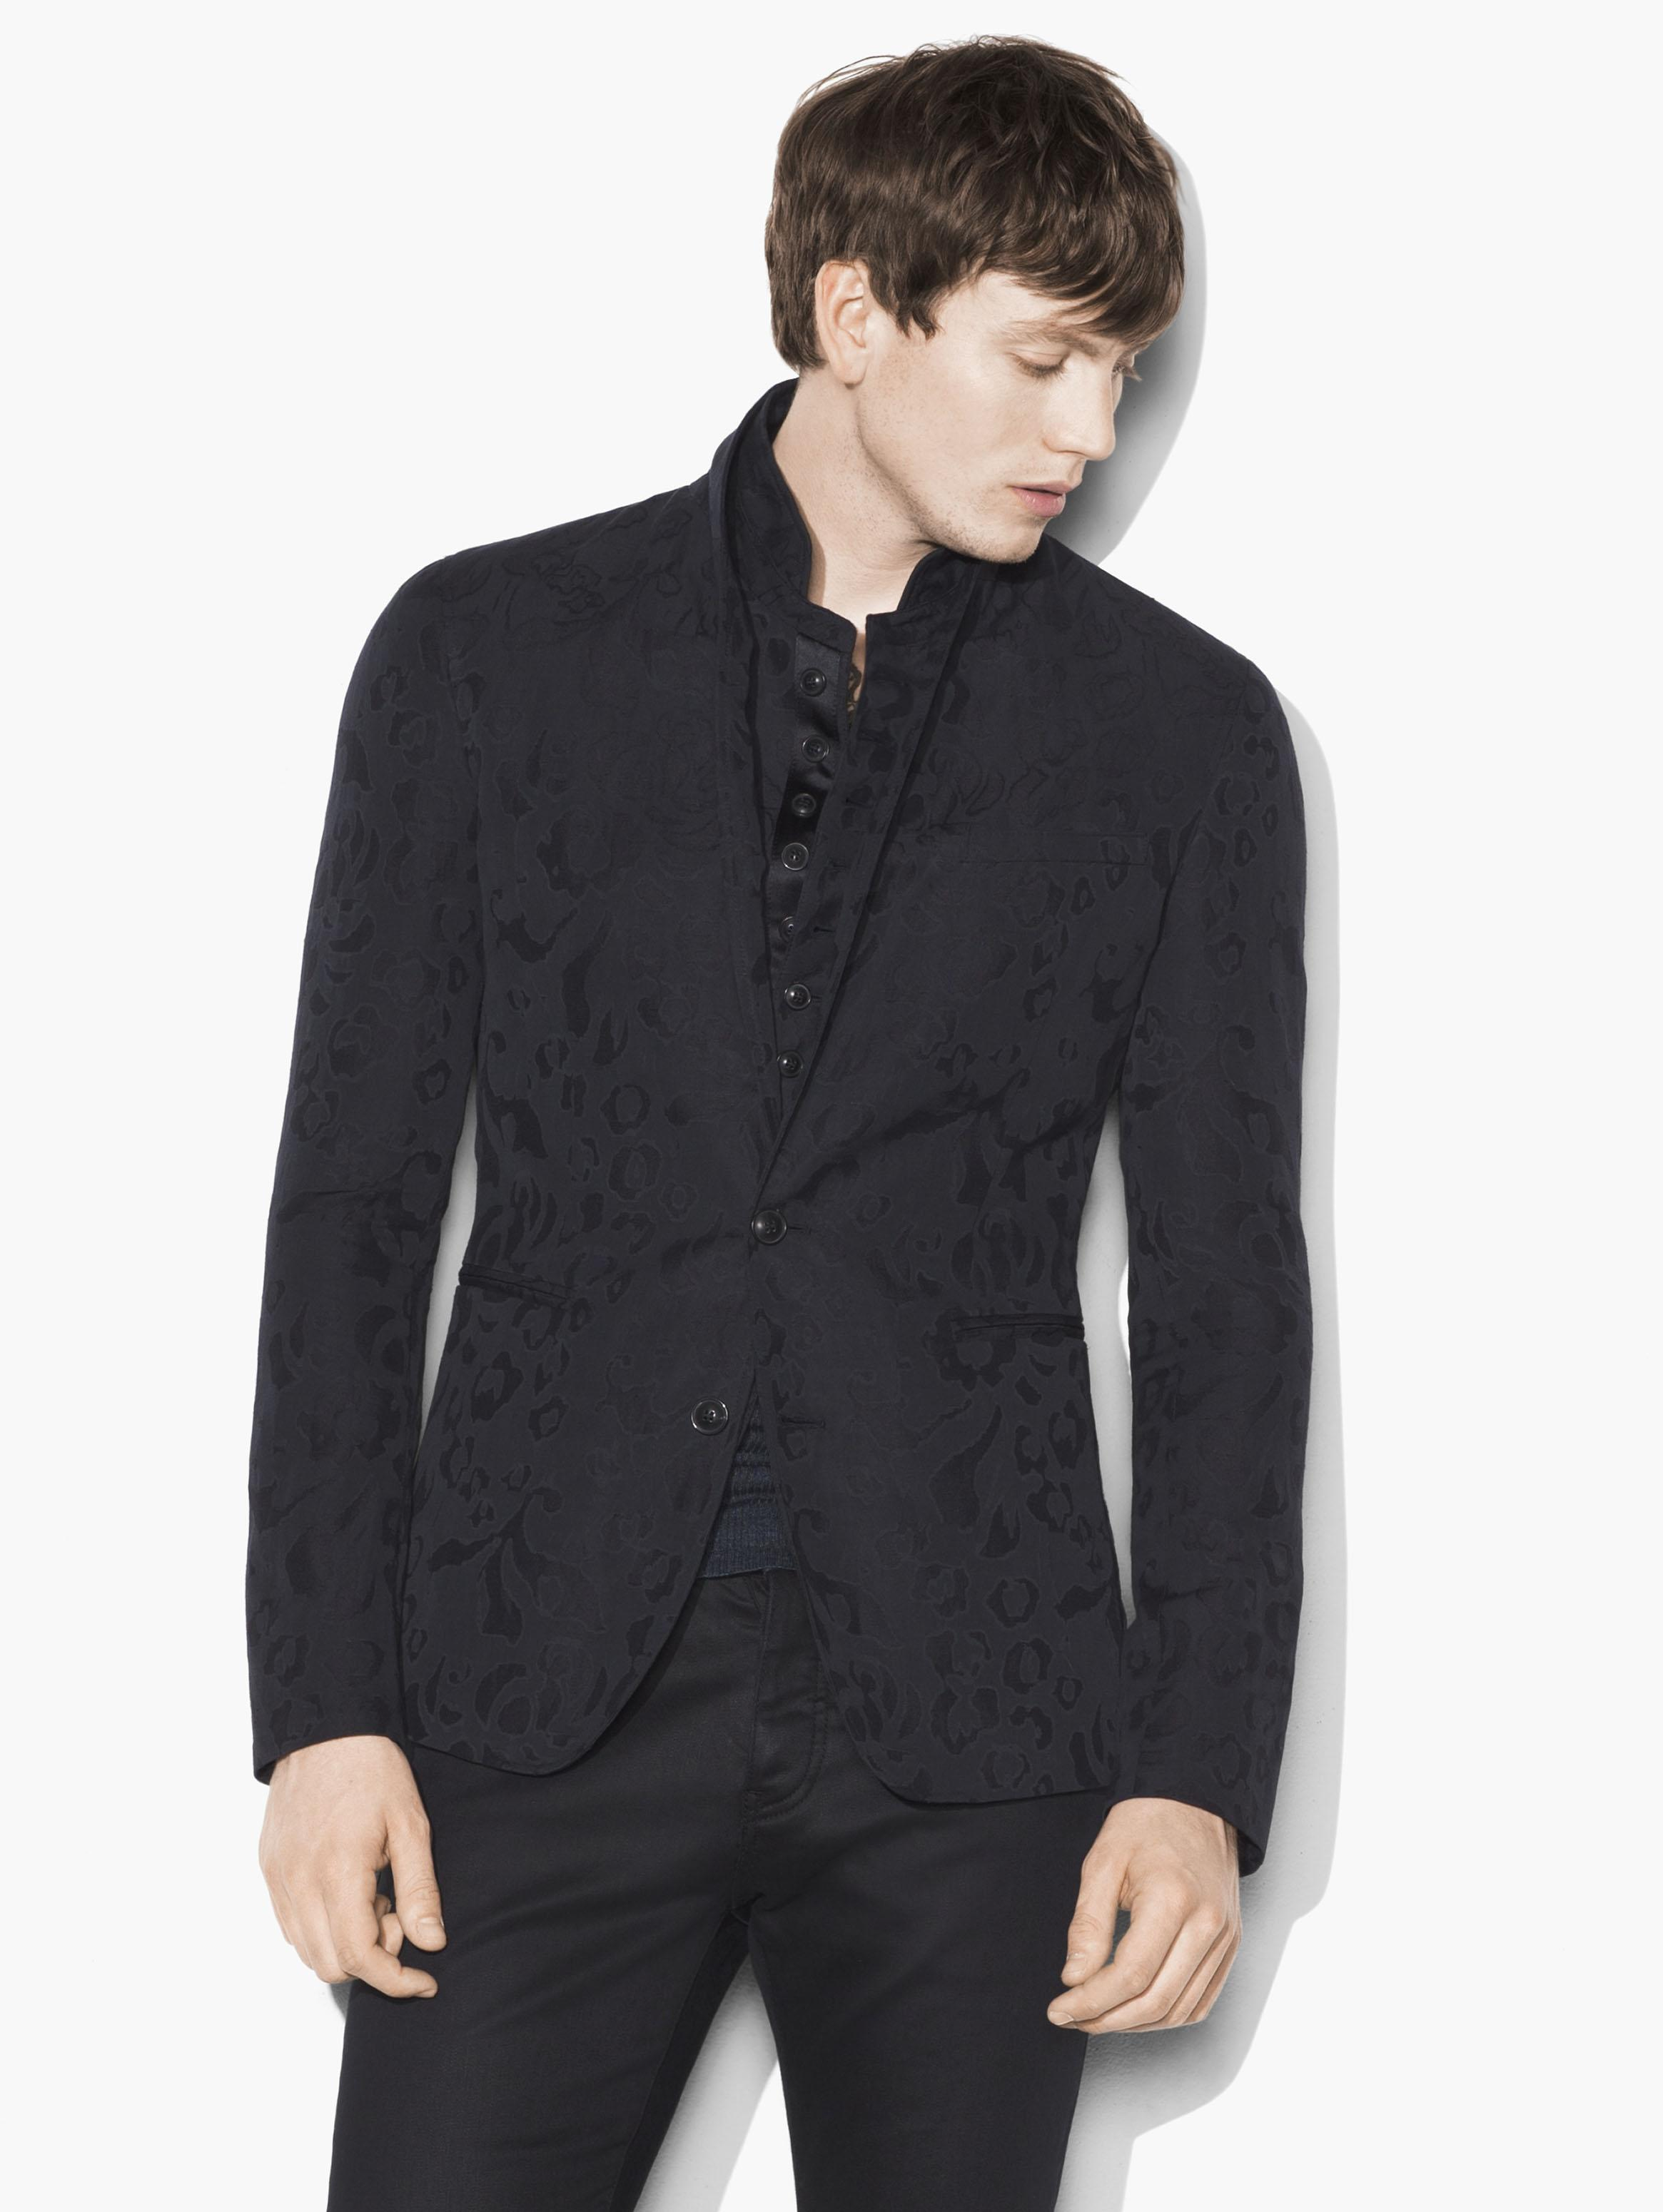 Rose Jacquard Jacket